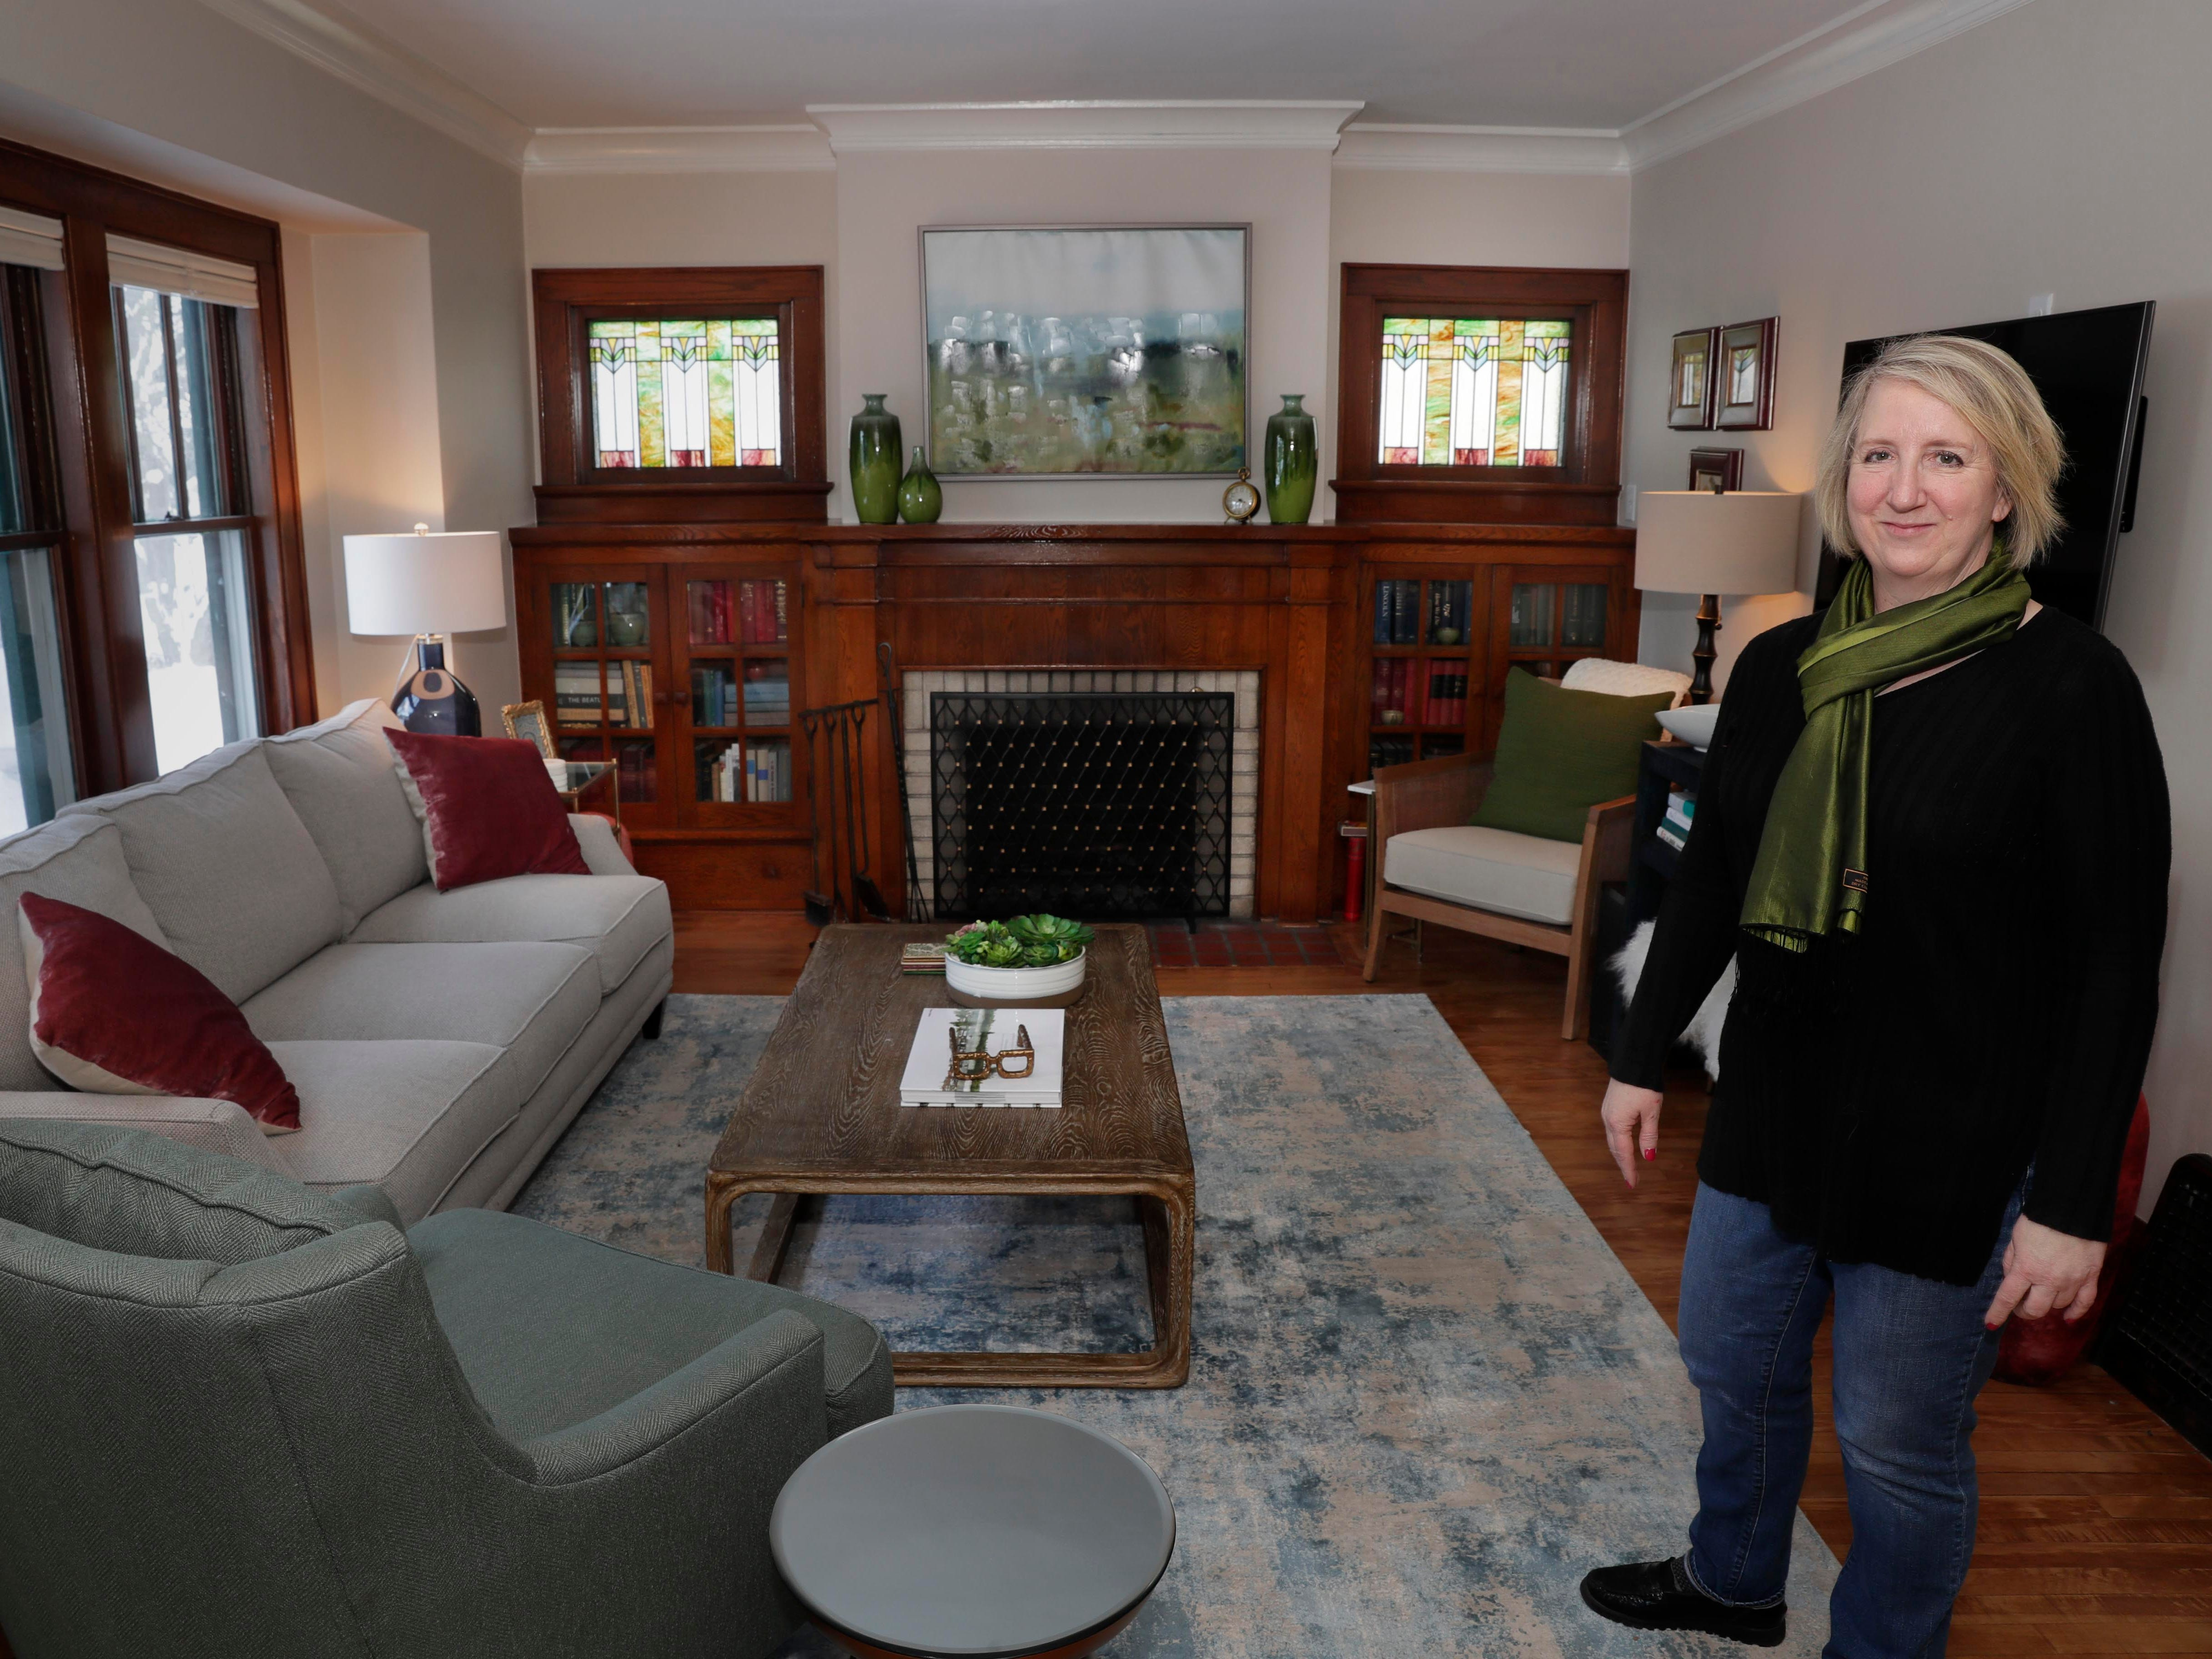 Aileen Smith's new home is just a few blocks from the home she and her late husband purchased and where their two children were raised.